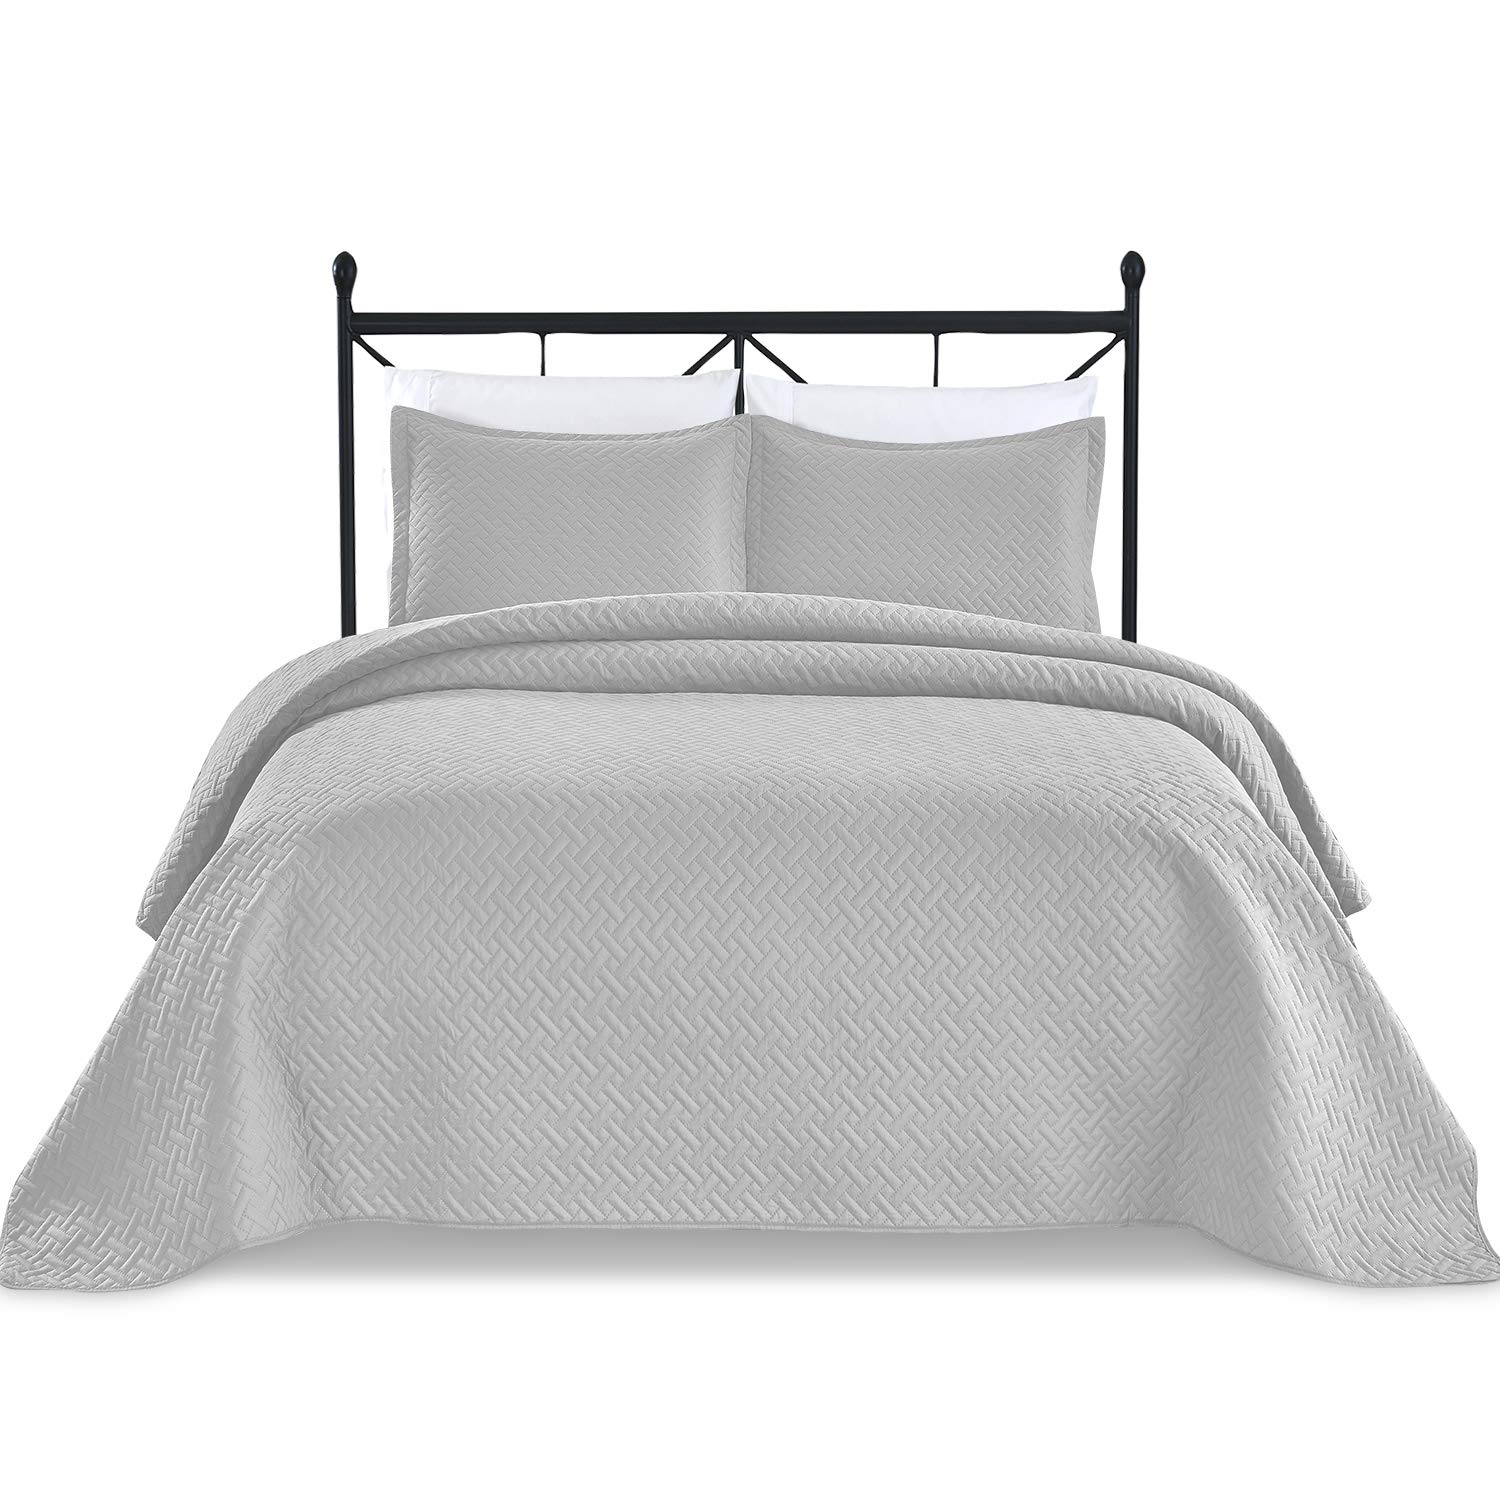 Basic Choice 3-Piece Light Weight Oversize Quilted Bedspread Coverlet Set - Silver Gray, Light Gray, Full/Queen Bedding